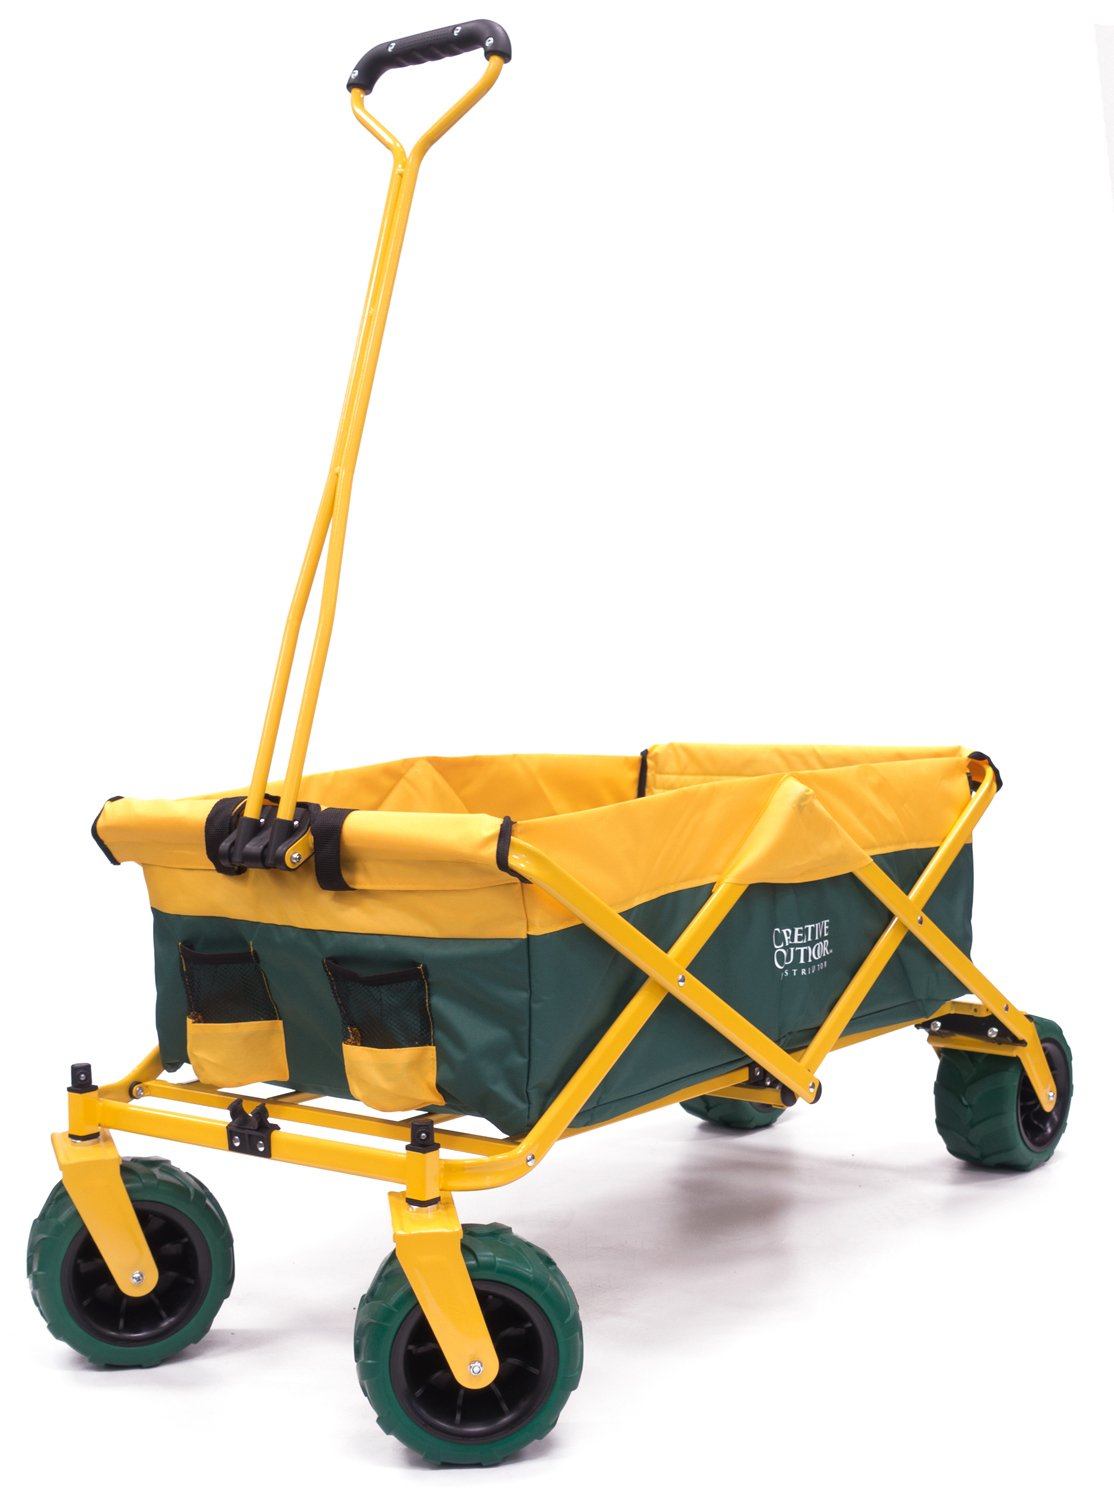 Creative Outdoor Distributor All-Terrain Folding SPORTS Team Wagon, (Green-Yellow/GreenWheels) 900555 - Multipurpose Cart for Gardening, Camping, Beach Trips, and Travelling by Creative Outdoor Distributor